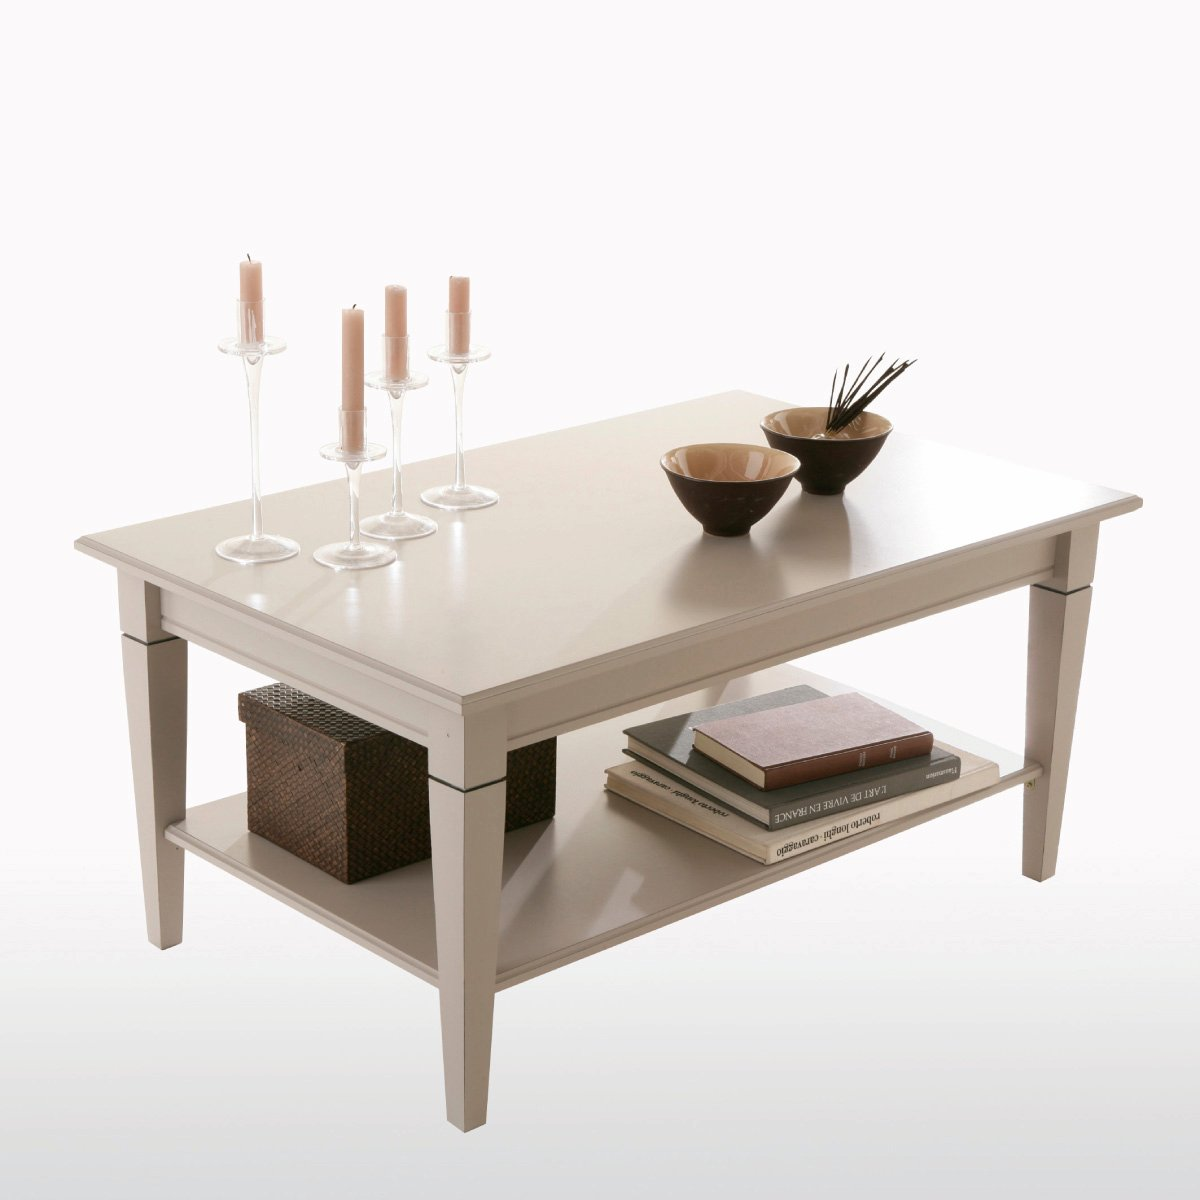 table basse la redoute table basse nottingham pin massif prix 129 00 euros. Black Bedroom Furniture Sets. Home Design Ideas